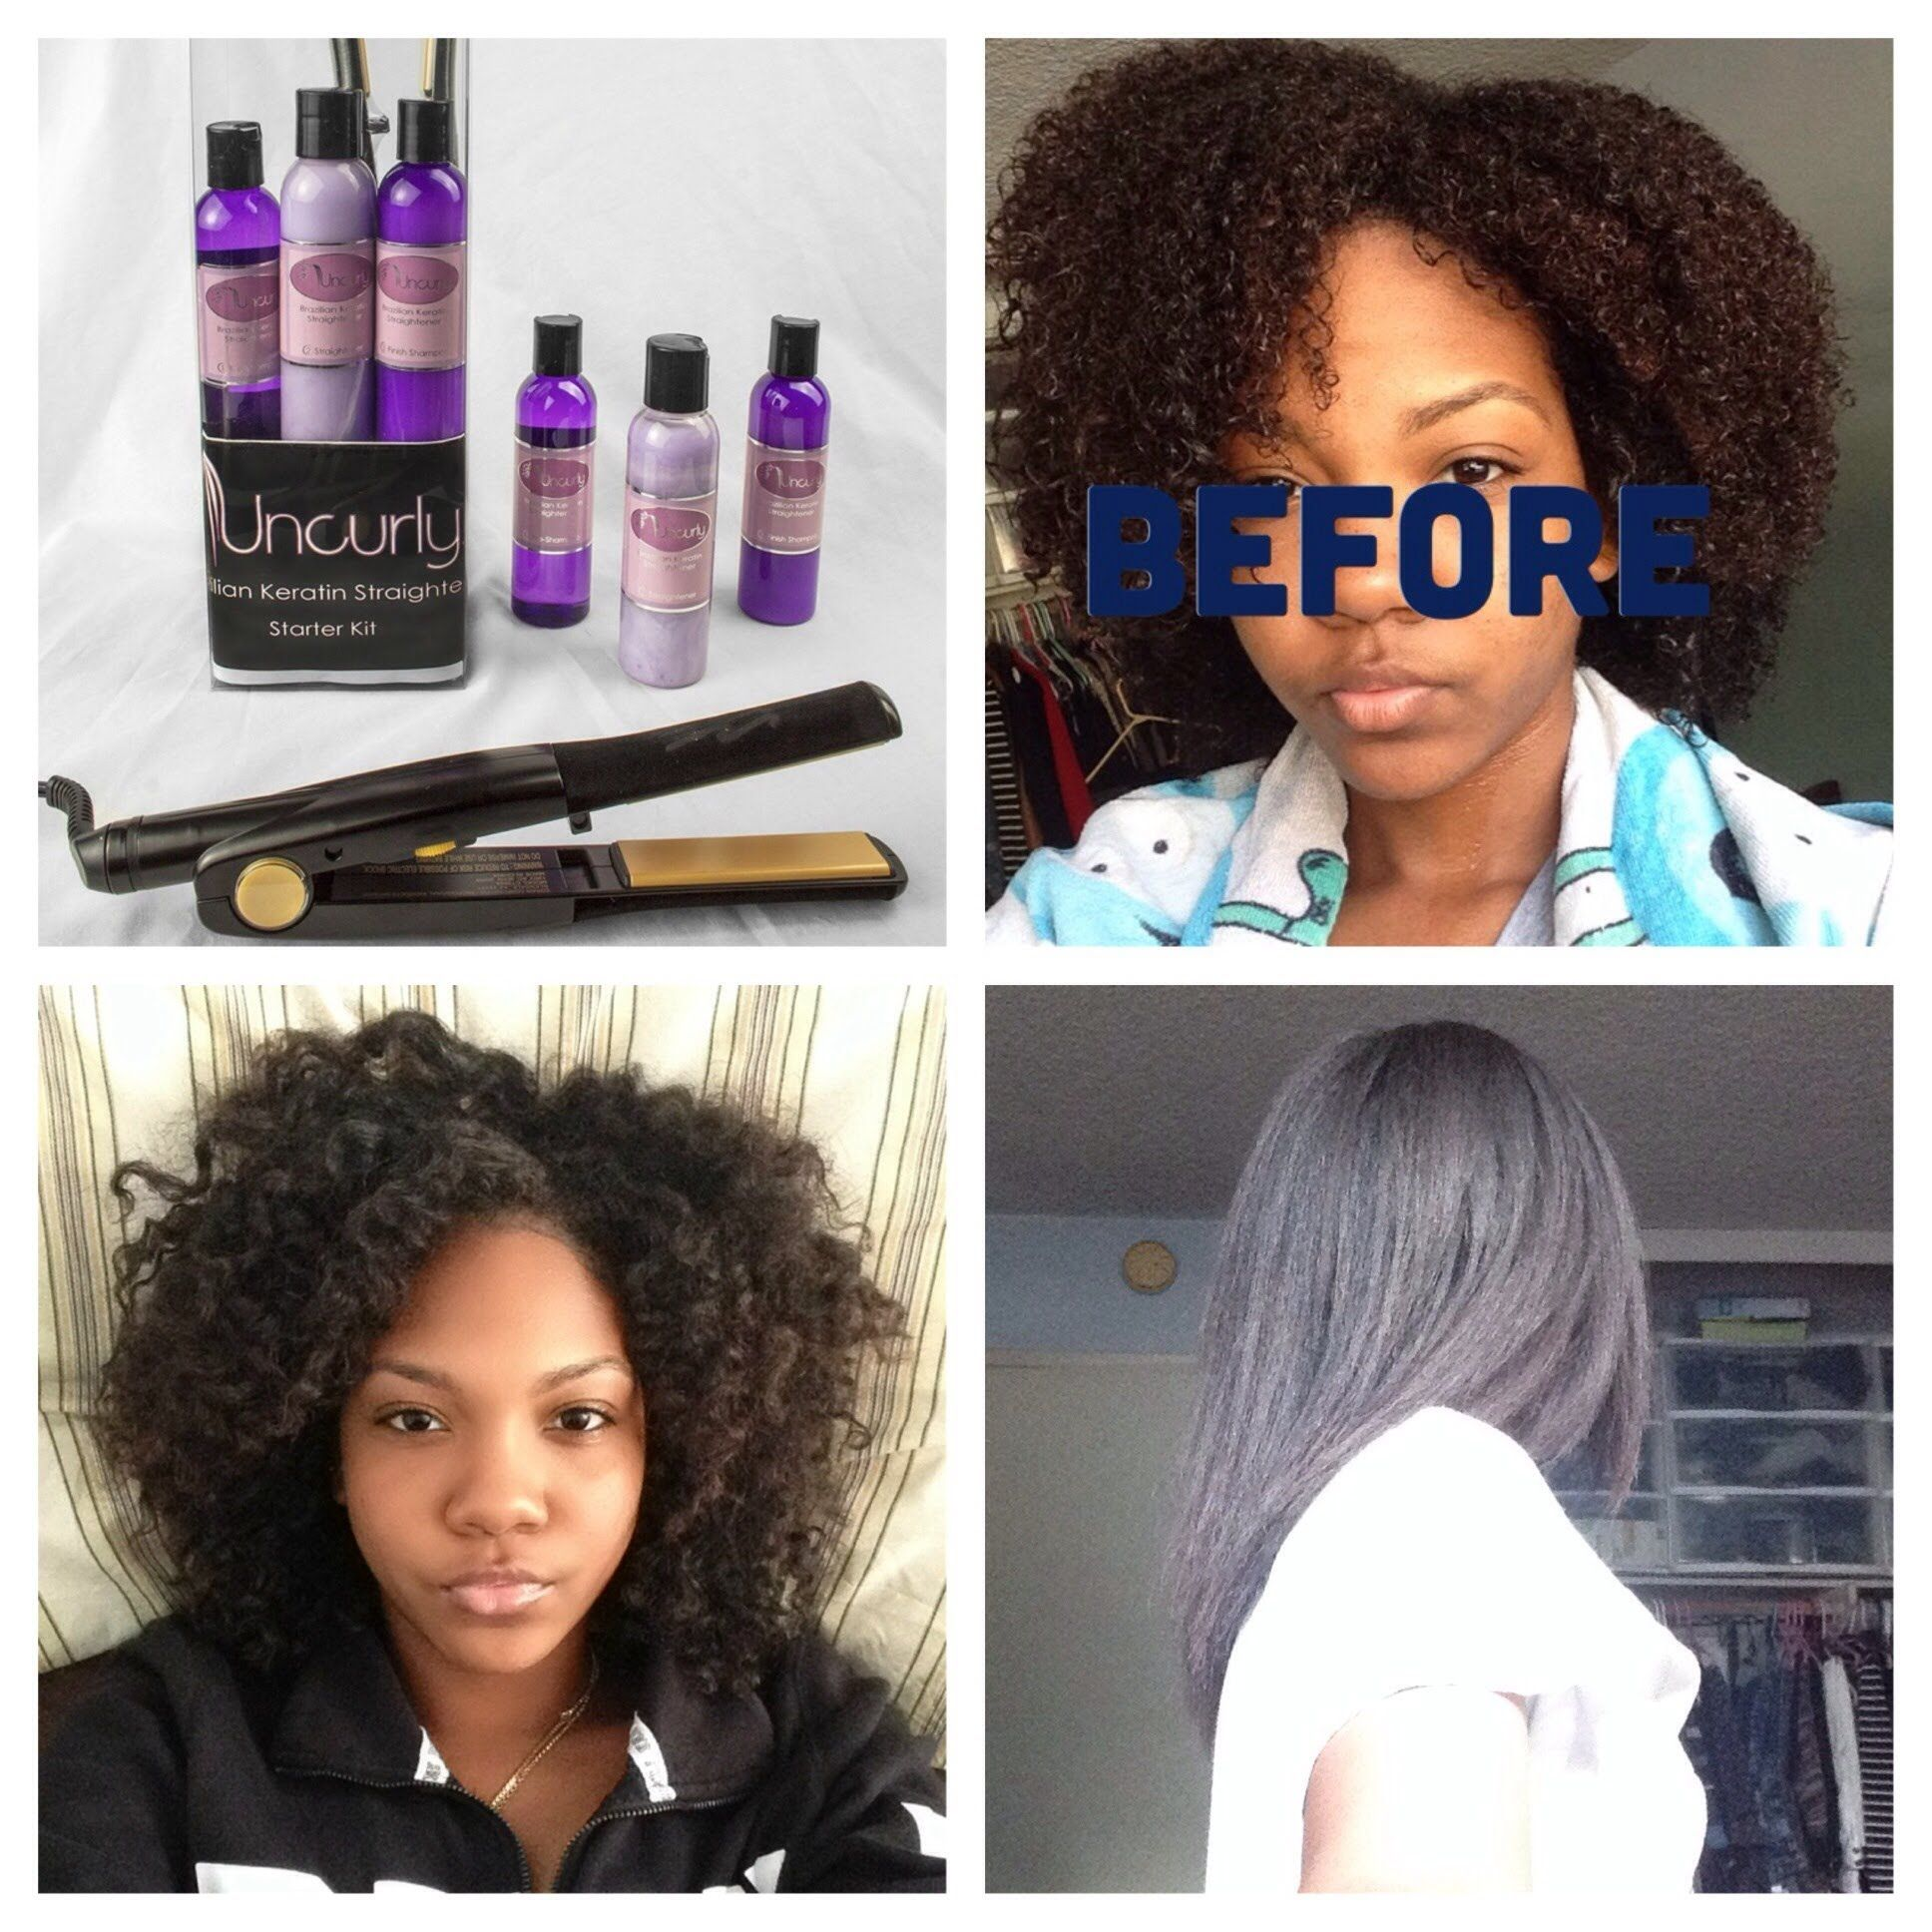 An independent review of Uncurly DIY Brazilian Keratin Straightener's effects on AA natural hair.  Uncurly loosens curl while retaining curl pattern and allows the versatility of wearing hair straight or curly while preventing frizz.  UNCURLY.com